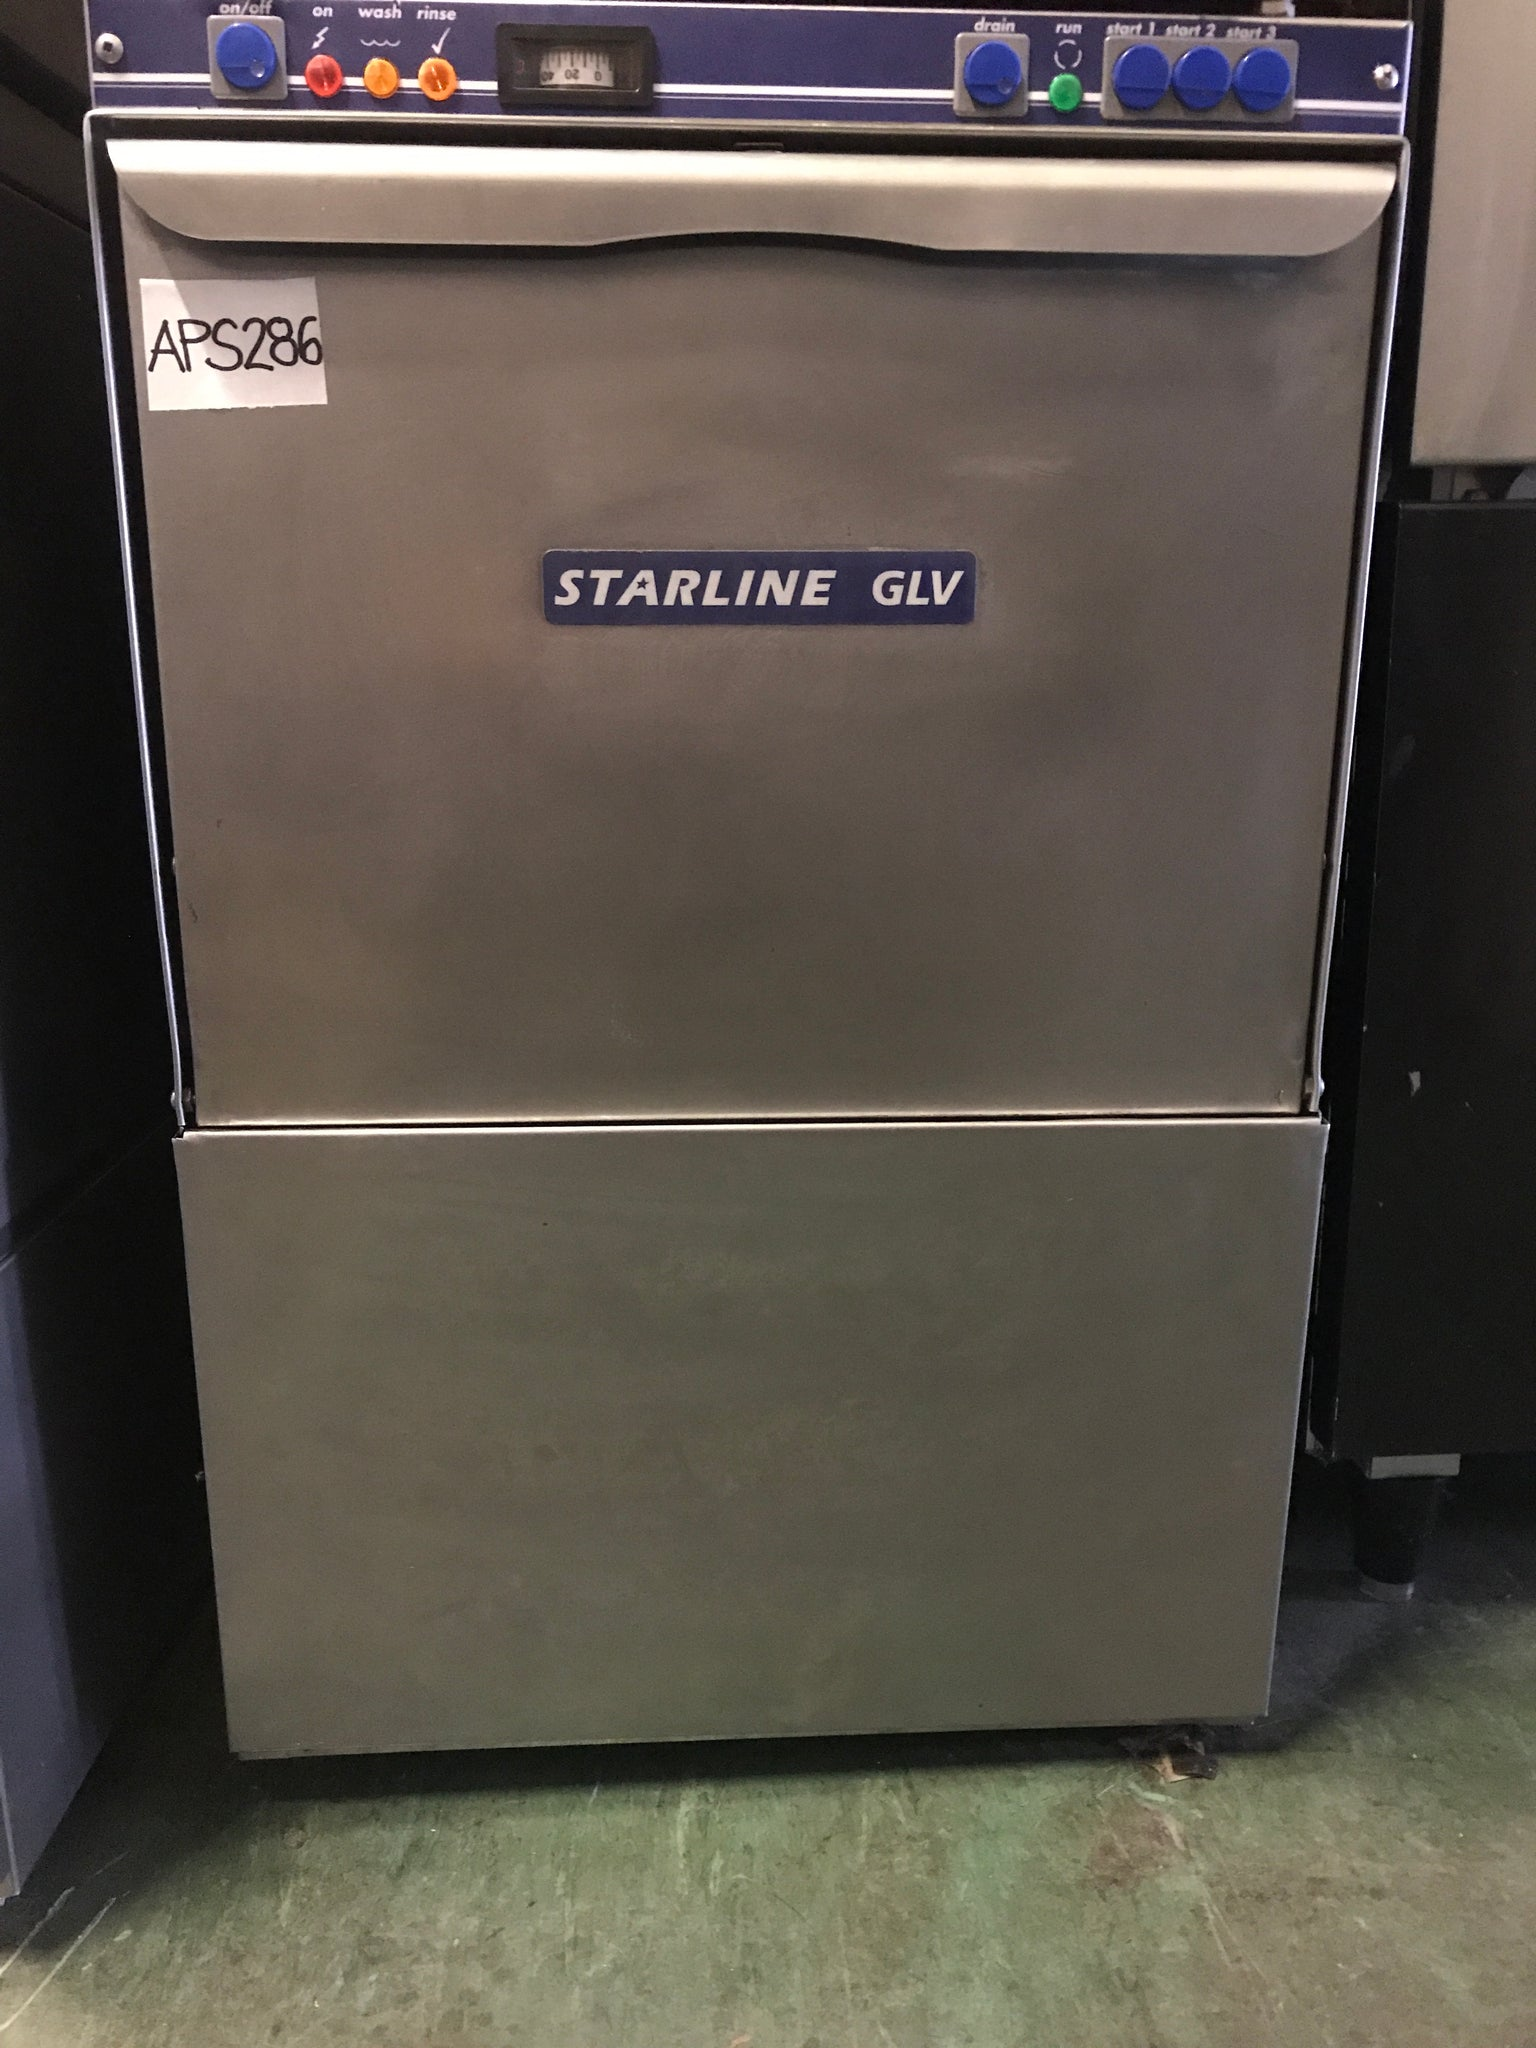 starline glv dishwasher manual